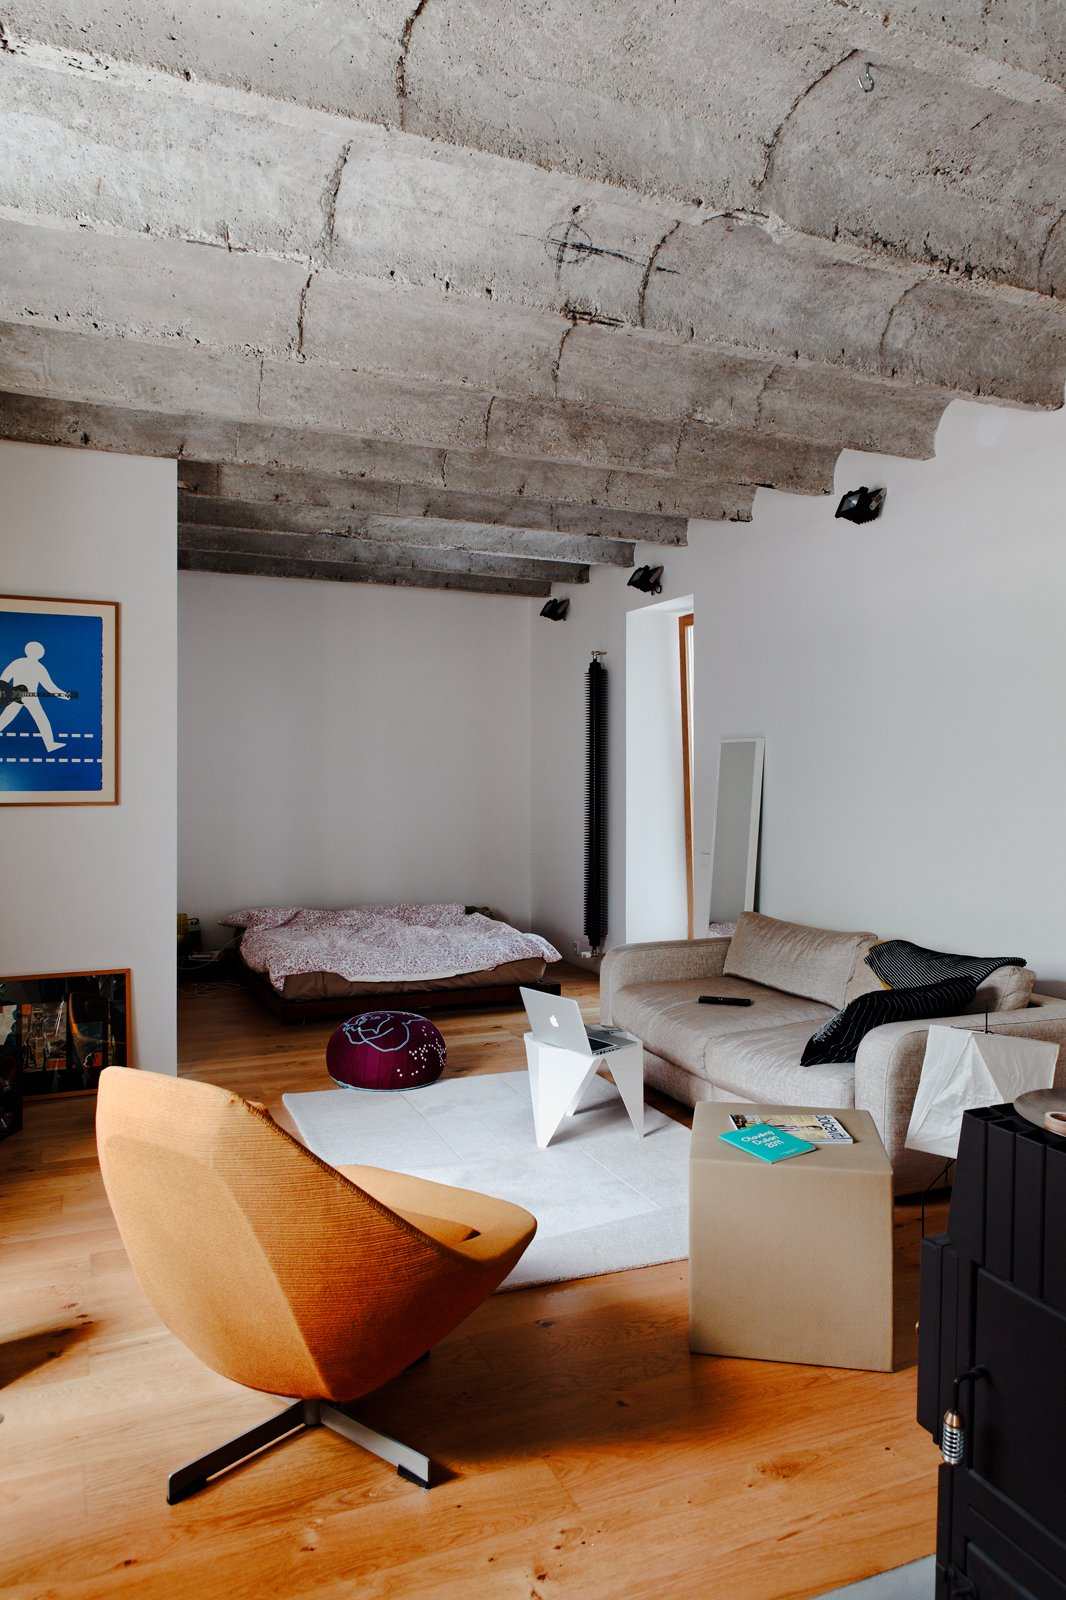 The rest of Kordík's small apartment is given over to an open-plan living and bedroom. The waves of the concrete ceiling offer a bit of overhead character while lounging on the couch or in bed.  Photo 3 of 8 in A Little Apartment Gets a Solid Renovation